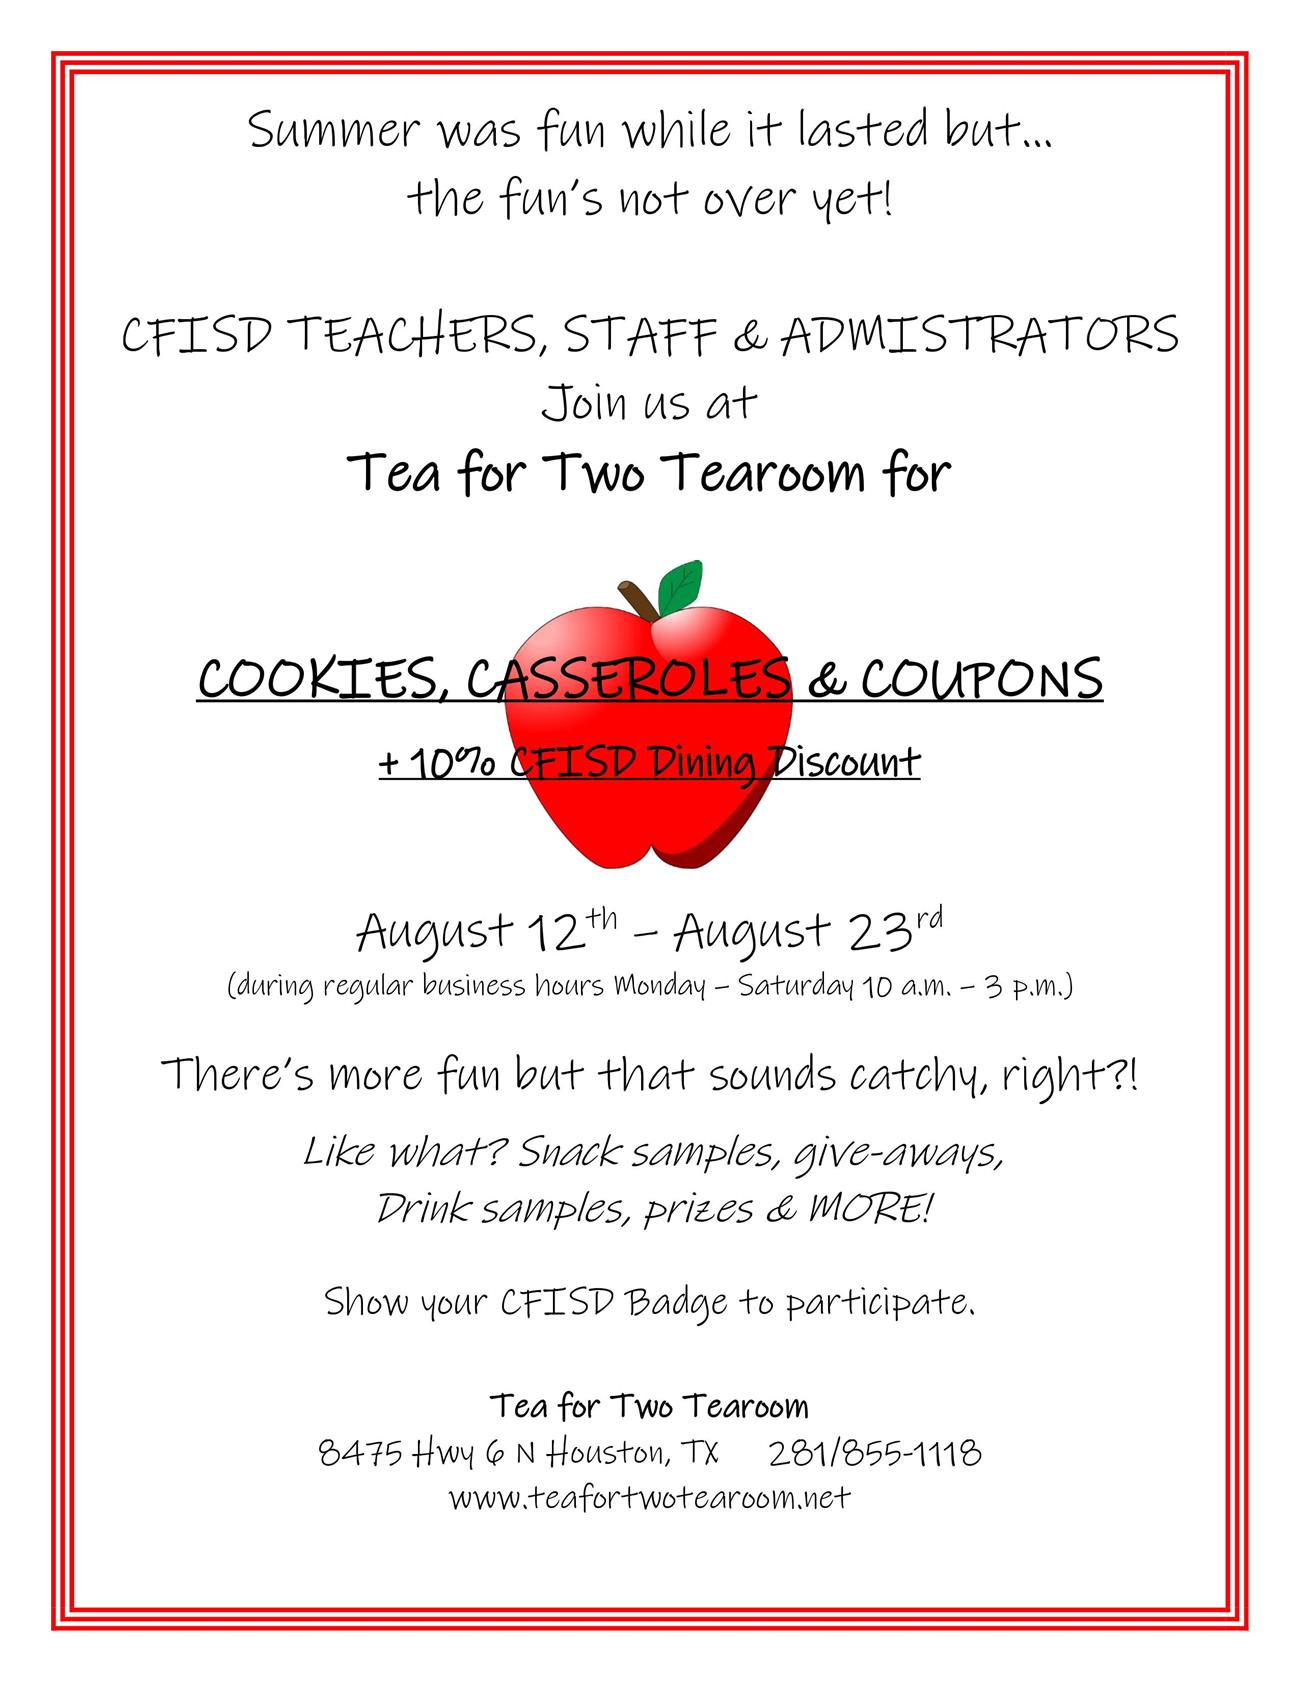 Summer was fun while it lasted but… the fun's not over yet!    CFISD TEACHERS, STAFF & ADMISTRATORS Join us at  Tea for Two Tearoom for      COOKIES, CASSEROLES & COUPONS + 10% CFISD Dining Discount    August 12th – August 23rd (during regular business hours Monday – Saturday 10 a.m. – 3 p.m.)    There's more fun but that sounds catchy, right?! Like what? Snack samples, give - aways,  Drink samples, prizes & MORE!    Show your CFISD Badge to participate.    Tea for Two Tearoom 8475 Hwy 6 N Houston, TX     281/855-1118 www.teafortwotearoom.net